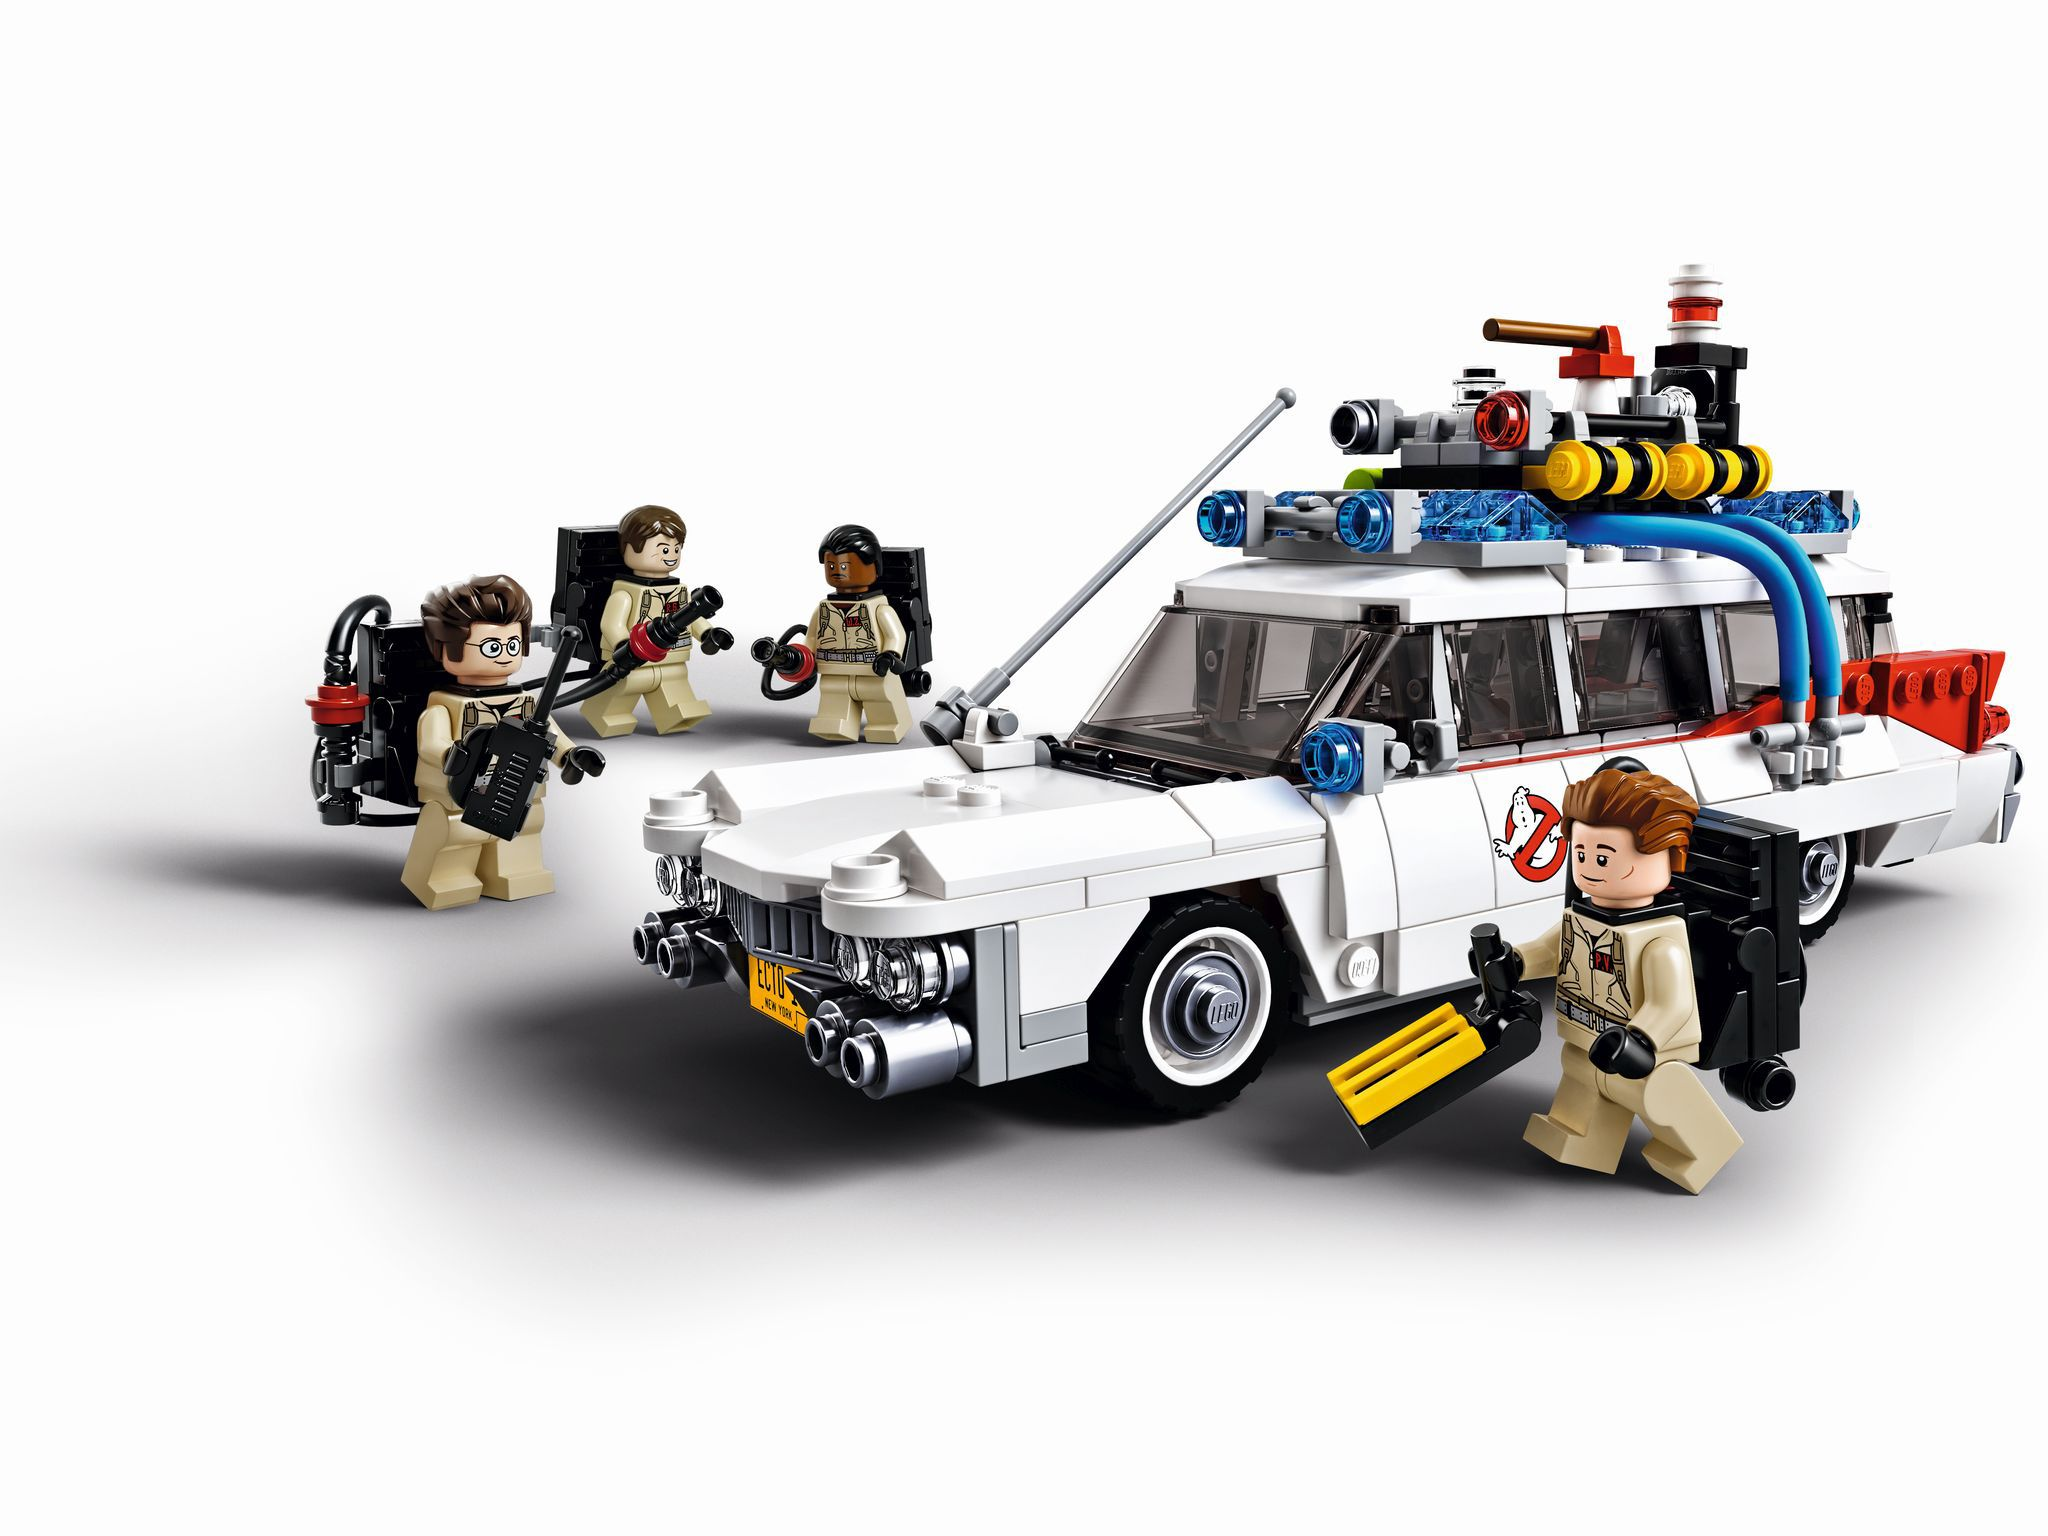 Lego 21108 Ghostbusters Ecto-1 Car